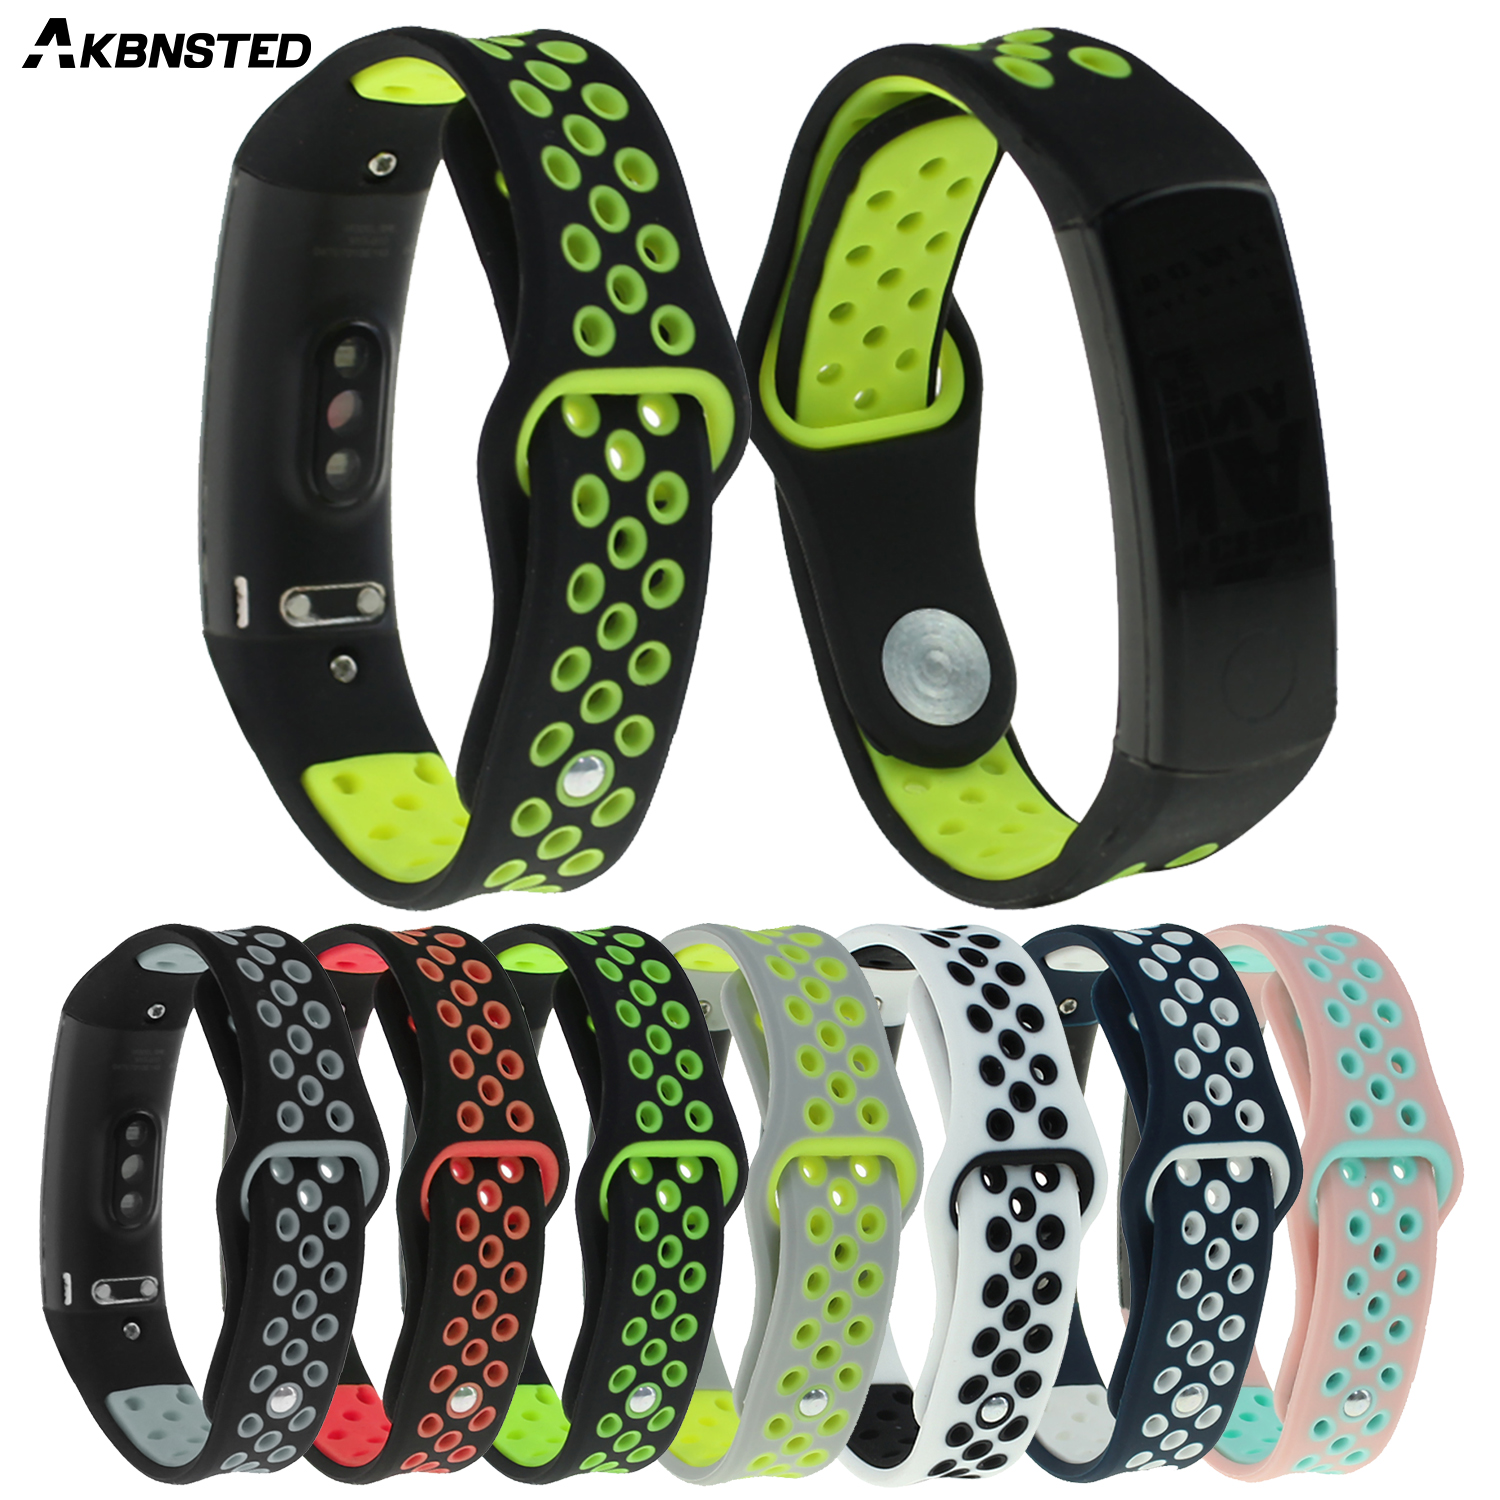 AKBNSTED Soft Silicone Strap For Huawei Honor Band 3 Replacement Wrist Band For Honor 3 Band Stainless Steel Buckle Watchband